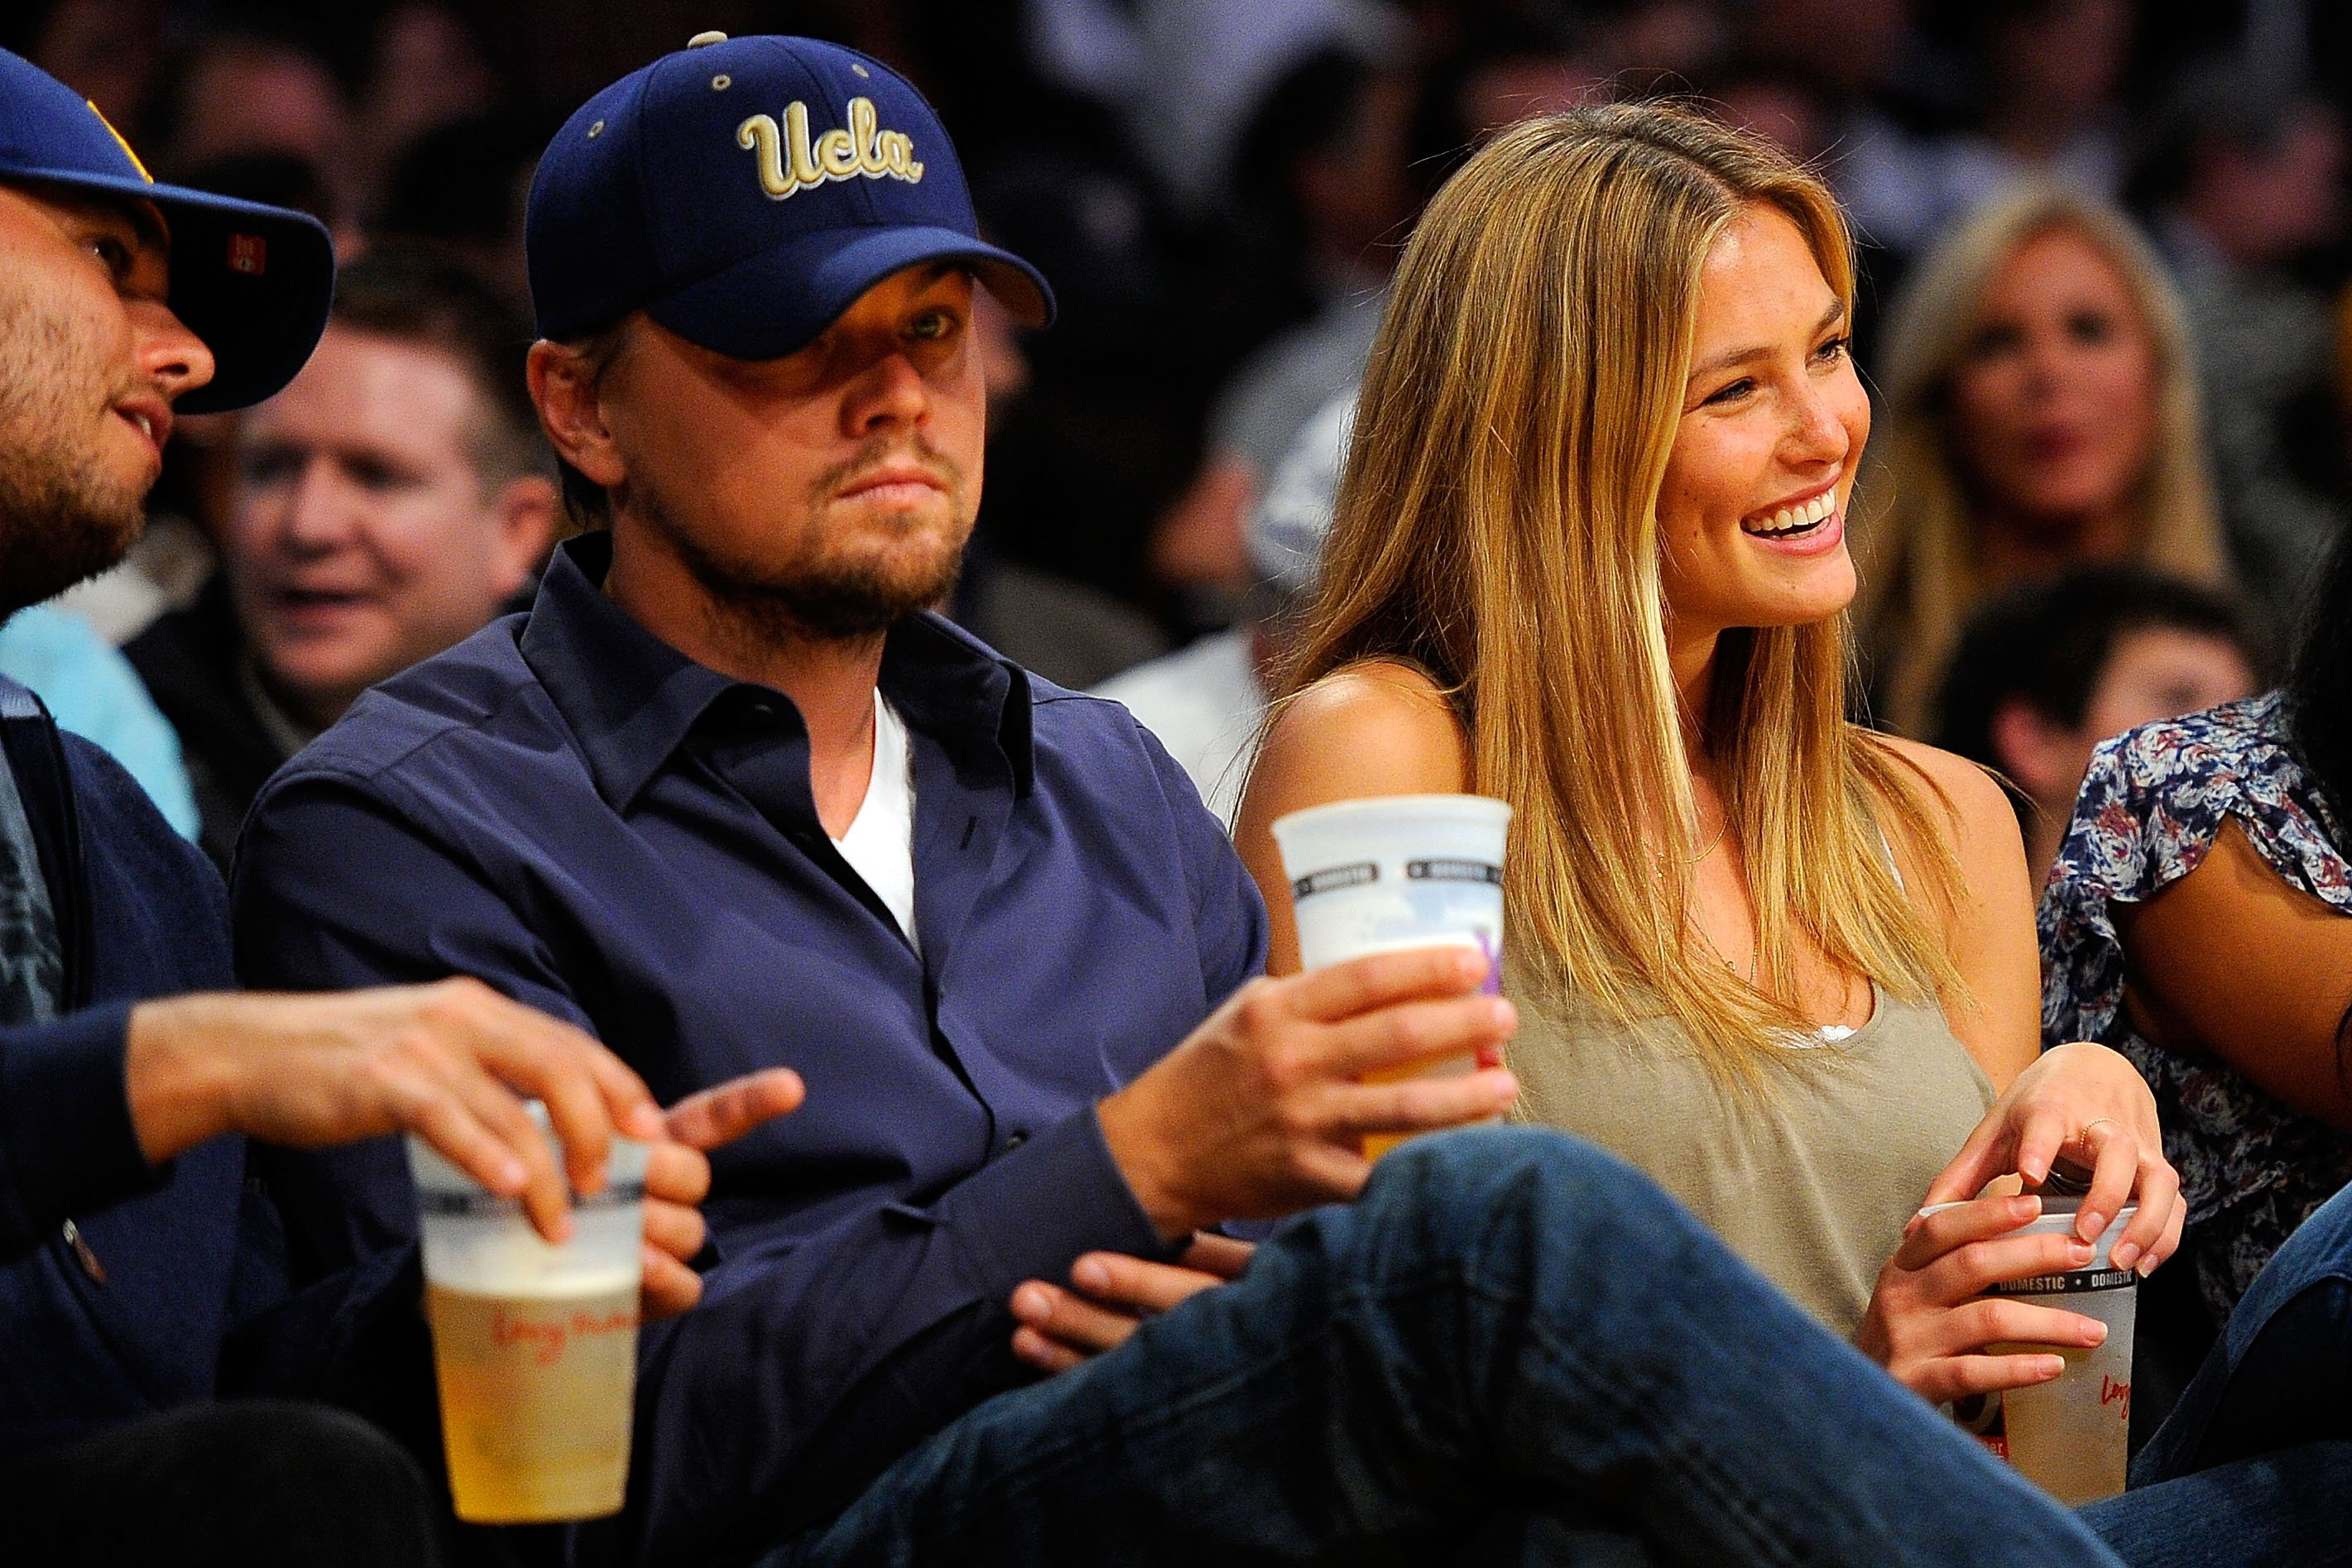 Image Source: Getty Images/Andrew D. Bernstein| Actor Leonardo DiCaprio and Supermodel Bar Refaeli attend a game between the Orlando Magic and the Los Angeles Lakers at Staples Center on January 18, 2010 in Los Angeles, California